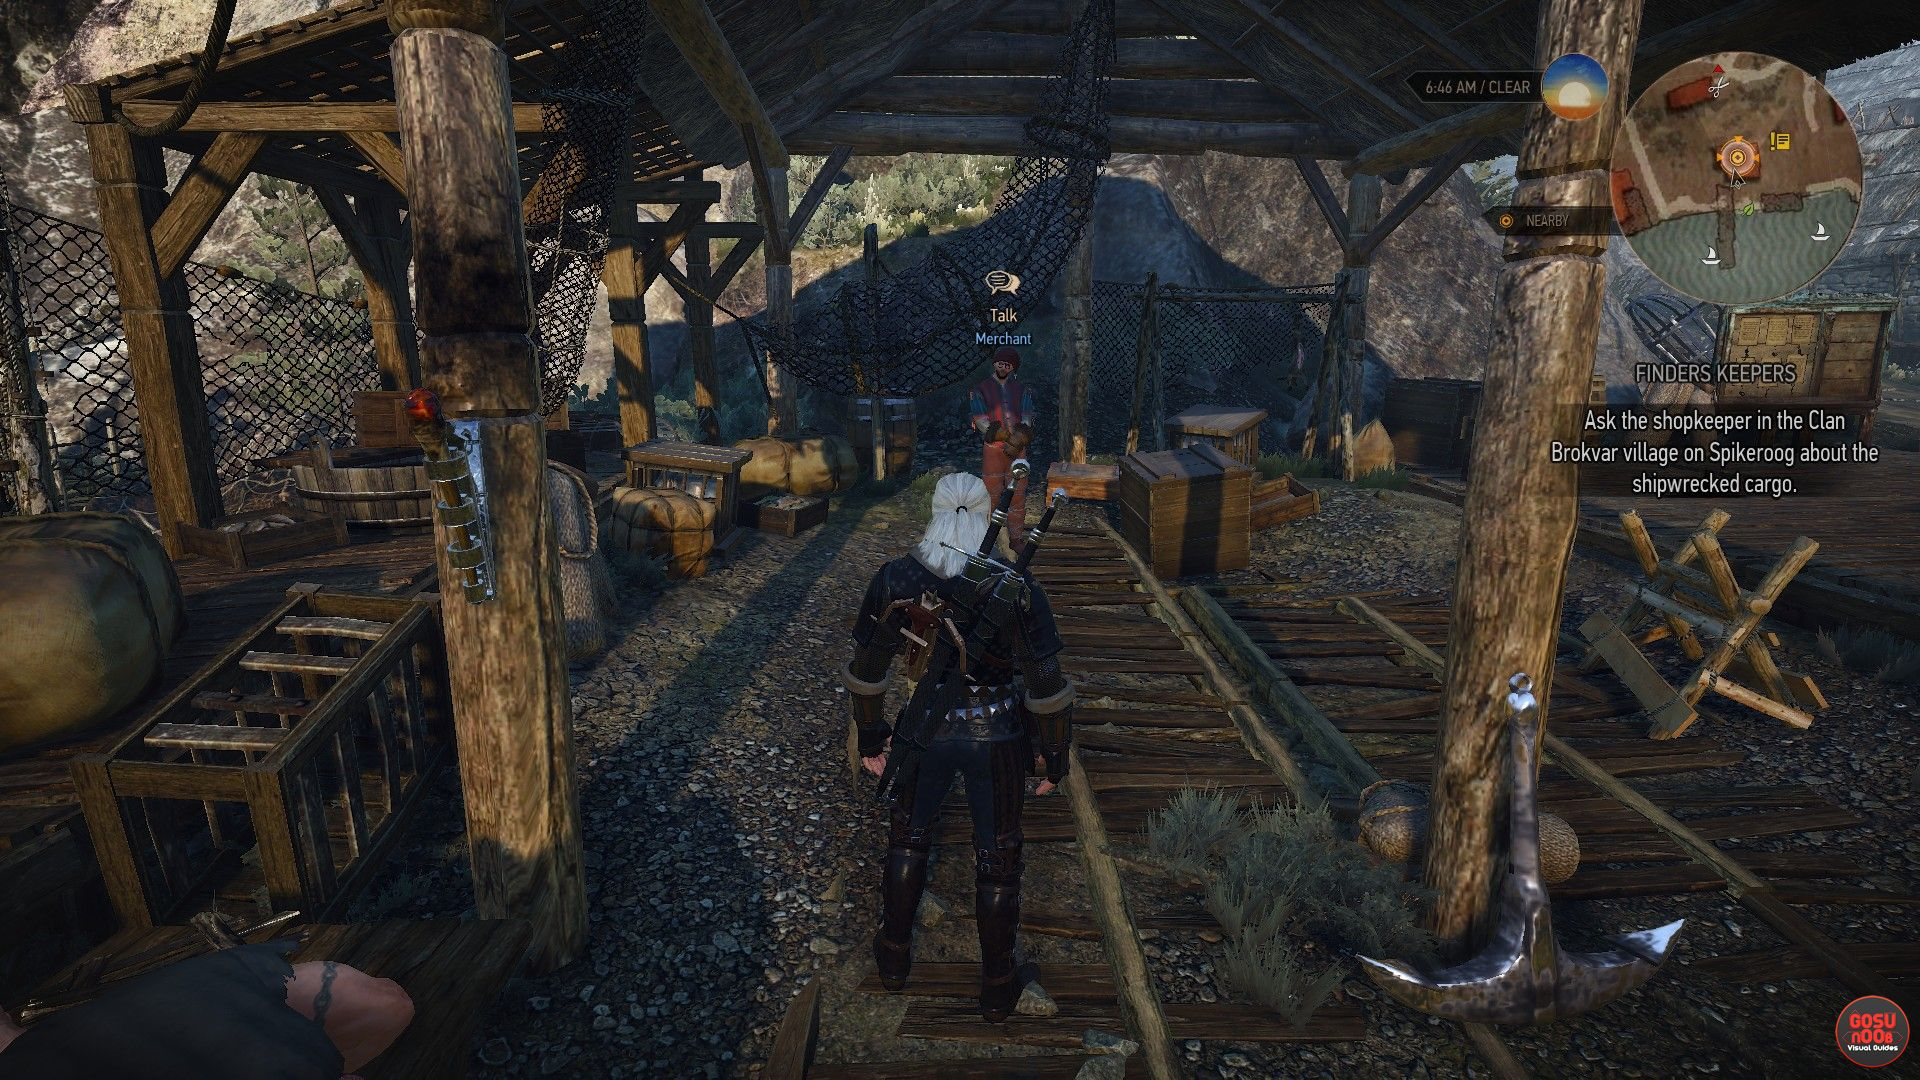 geralt standing in front of a seaside merchant who is surrounded by various crates and sundry in Witcher 3. screenshot from gosunoob